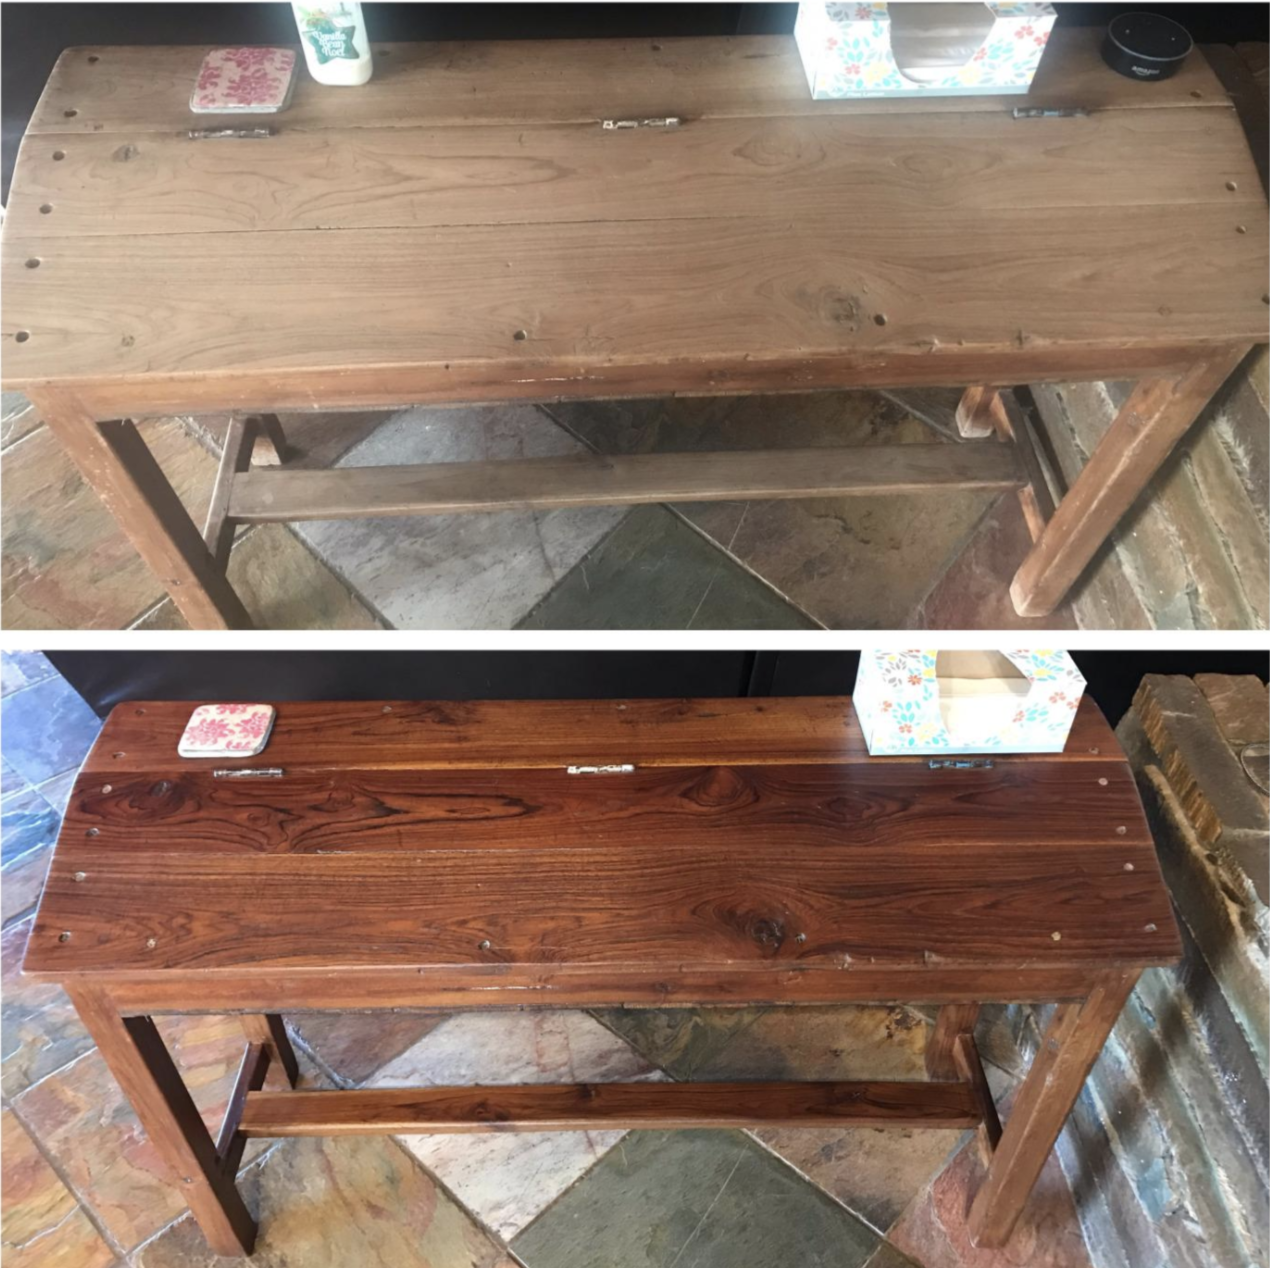 Before and after image of a reviewer's console. The before picture shows dull, dried out wood and the results are a richer color